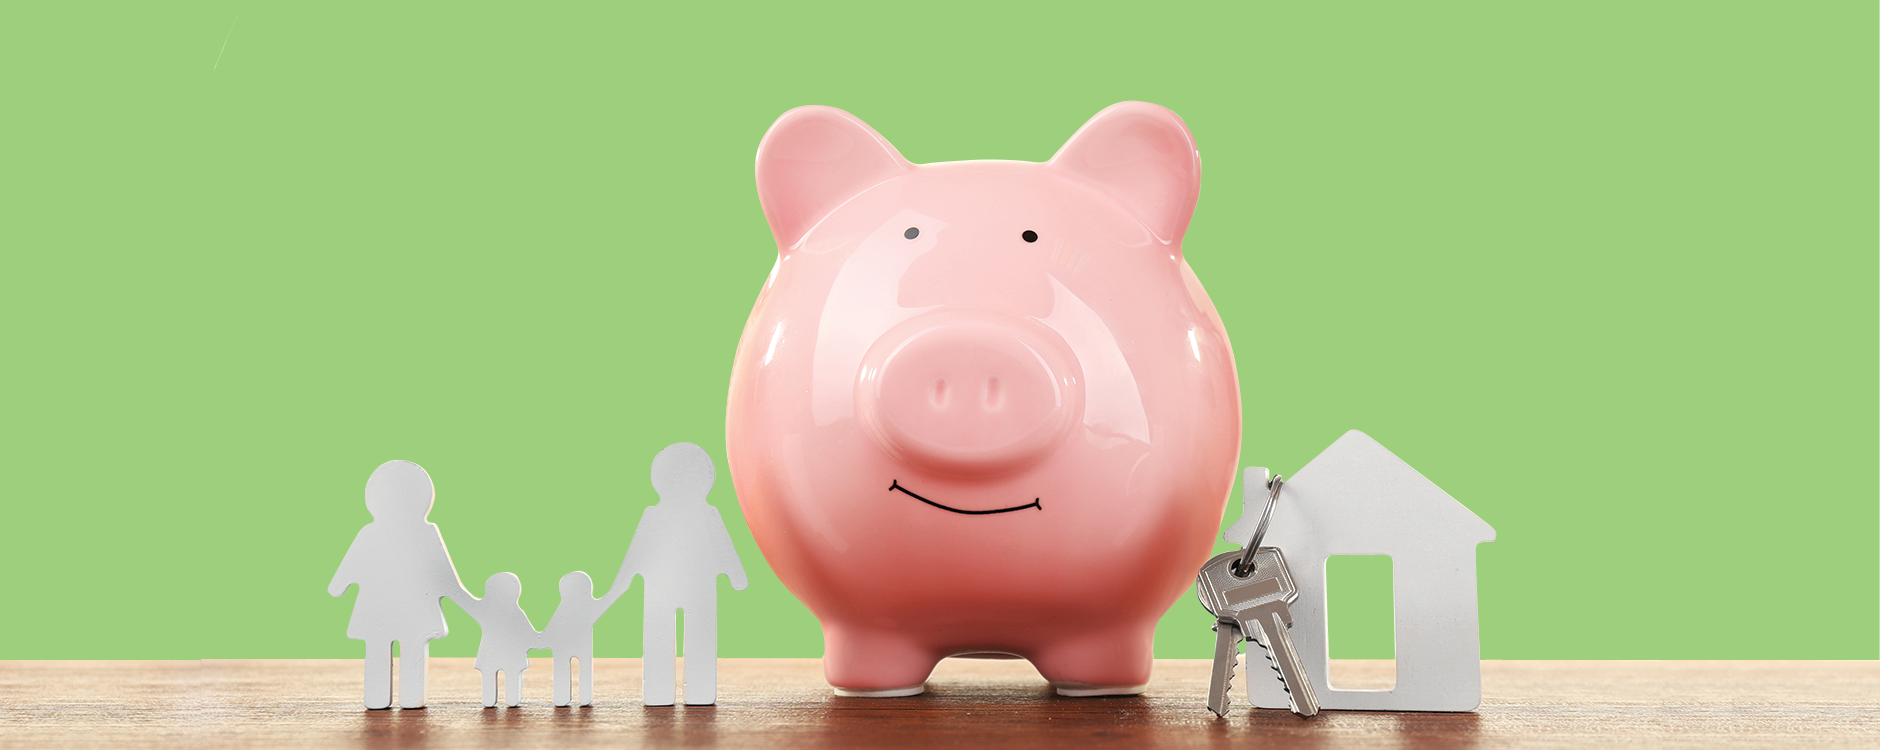 Pink piggy bank on green background - Banner